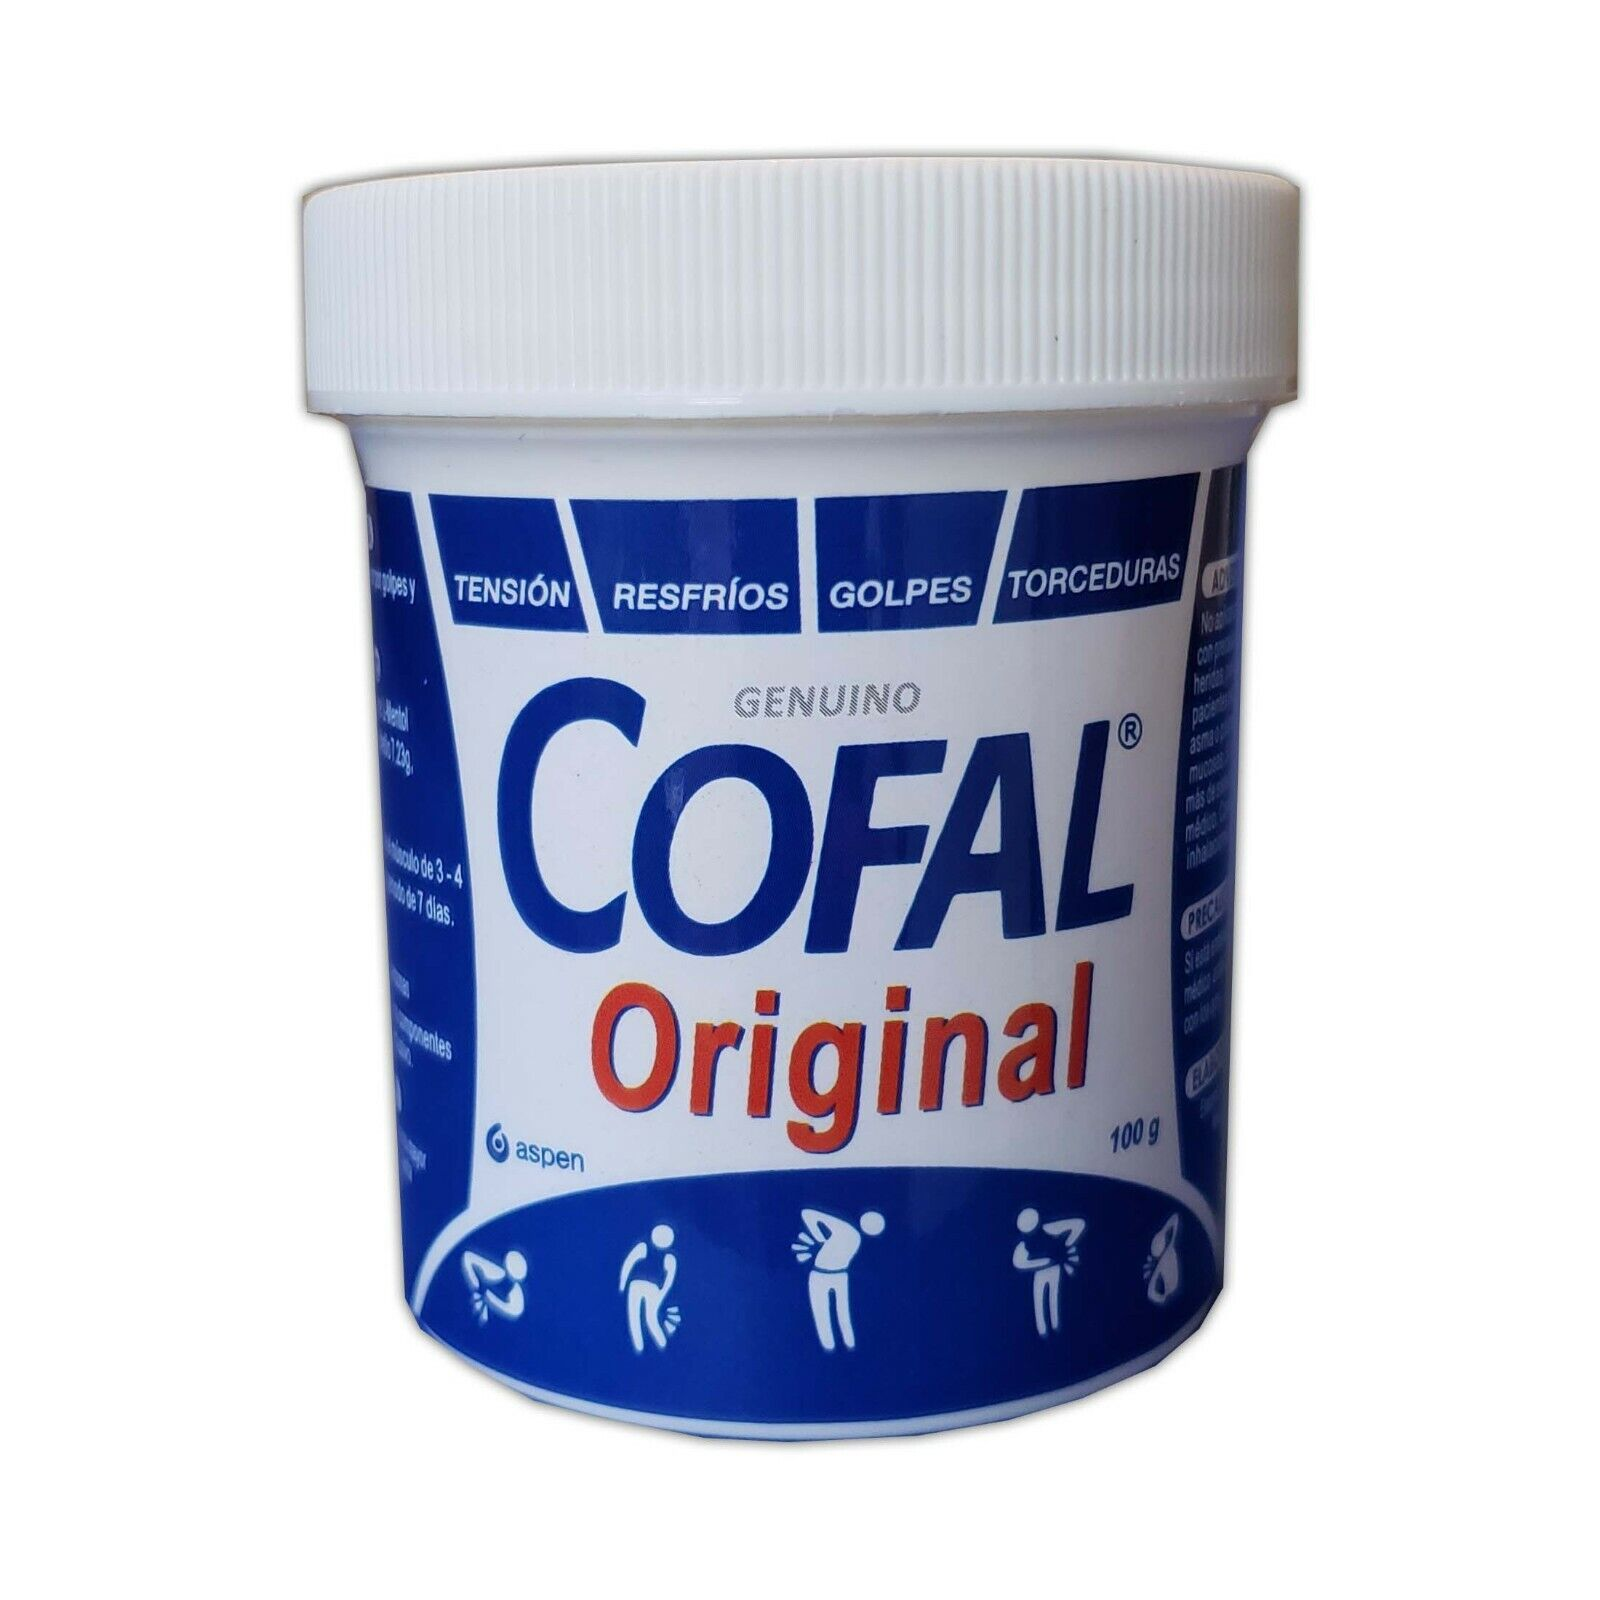 COFAL ORIGINAL GENUINO PARA DOLOR 2.1 OZ FOR MUSCULAR AND BACK PAIN